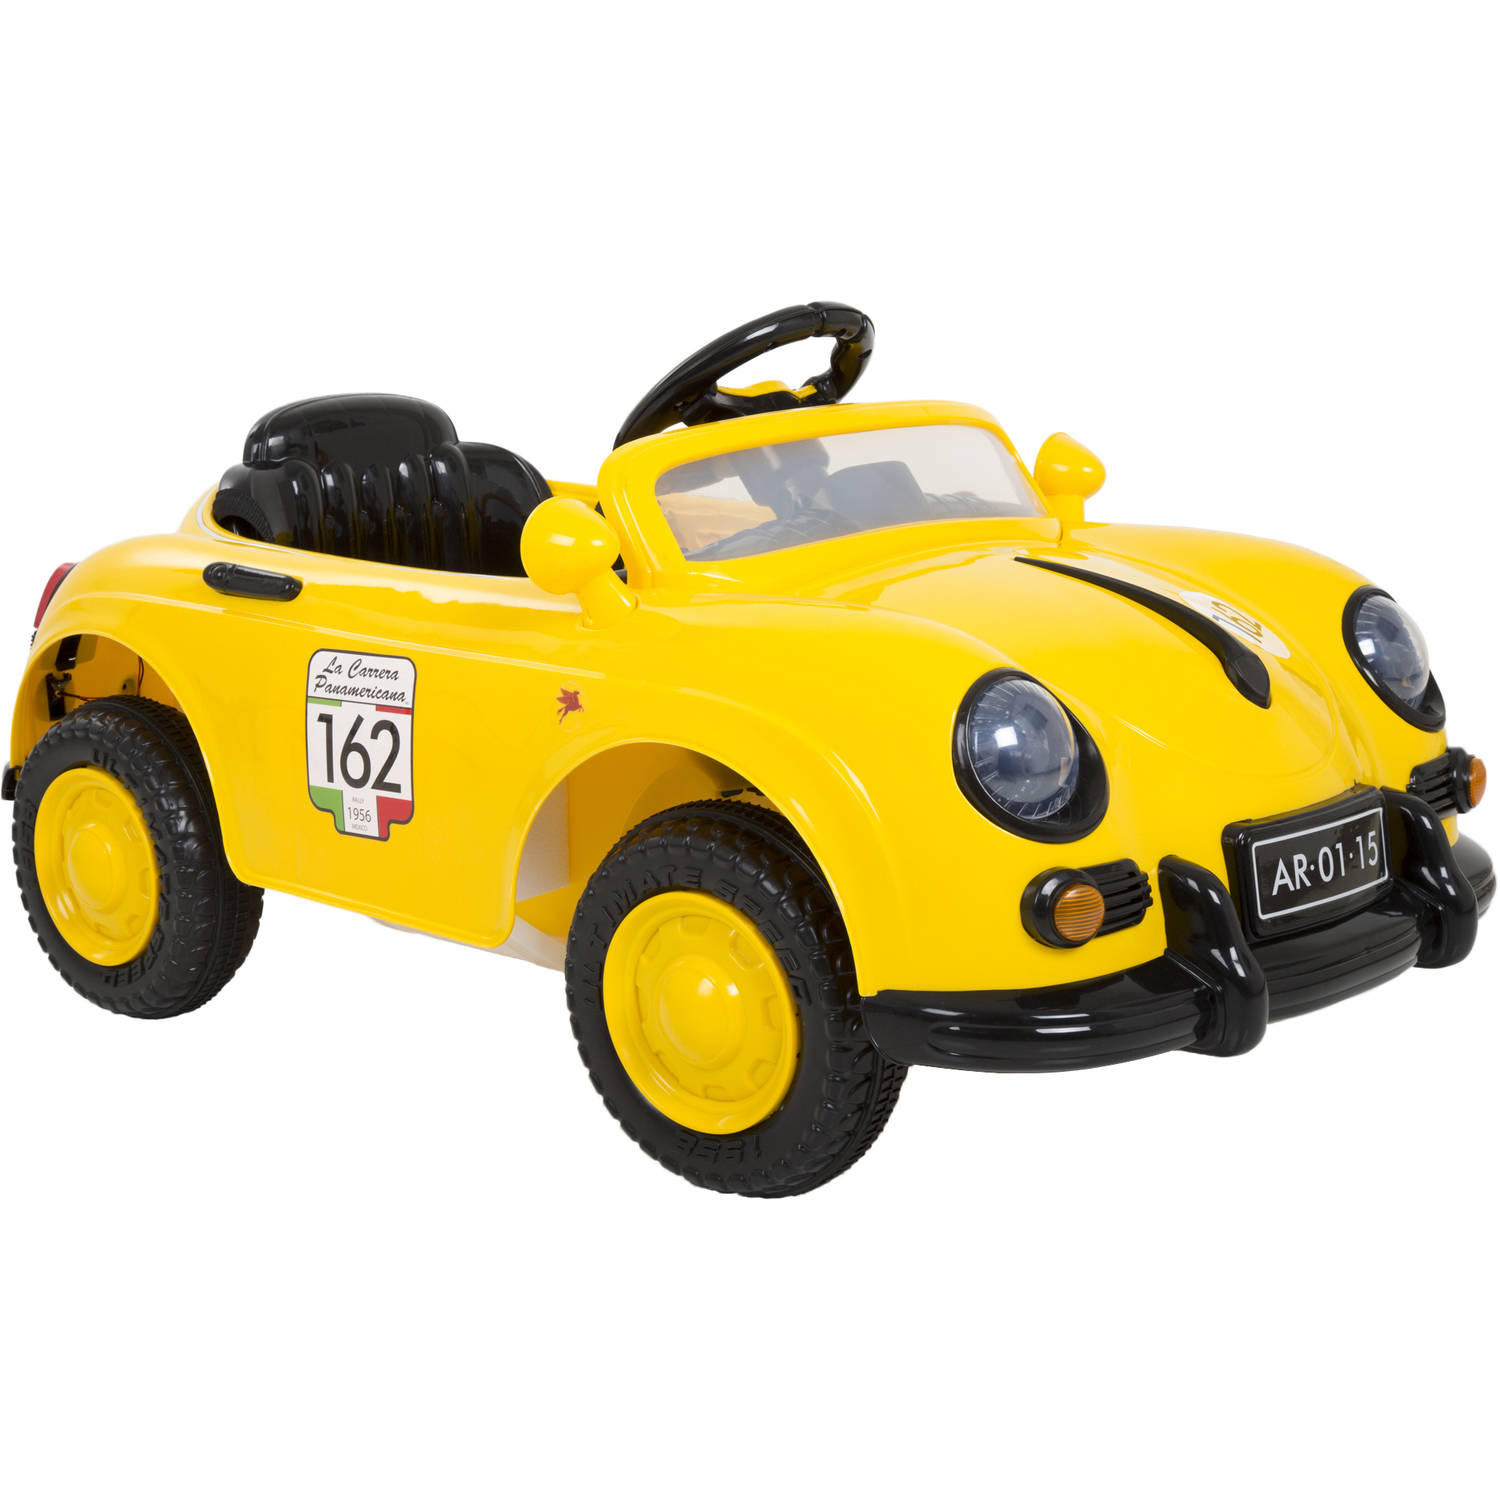 car ride toys for 3 4 year old boys girls little electric cars ...